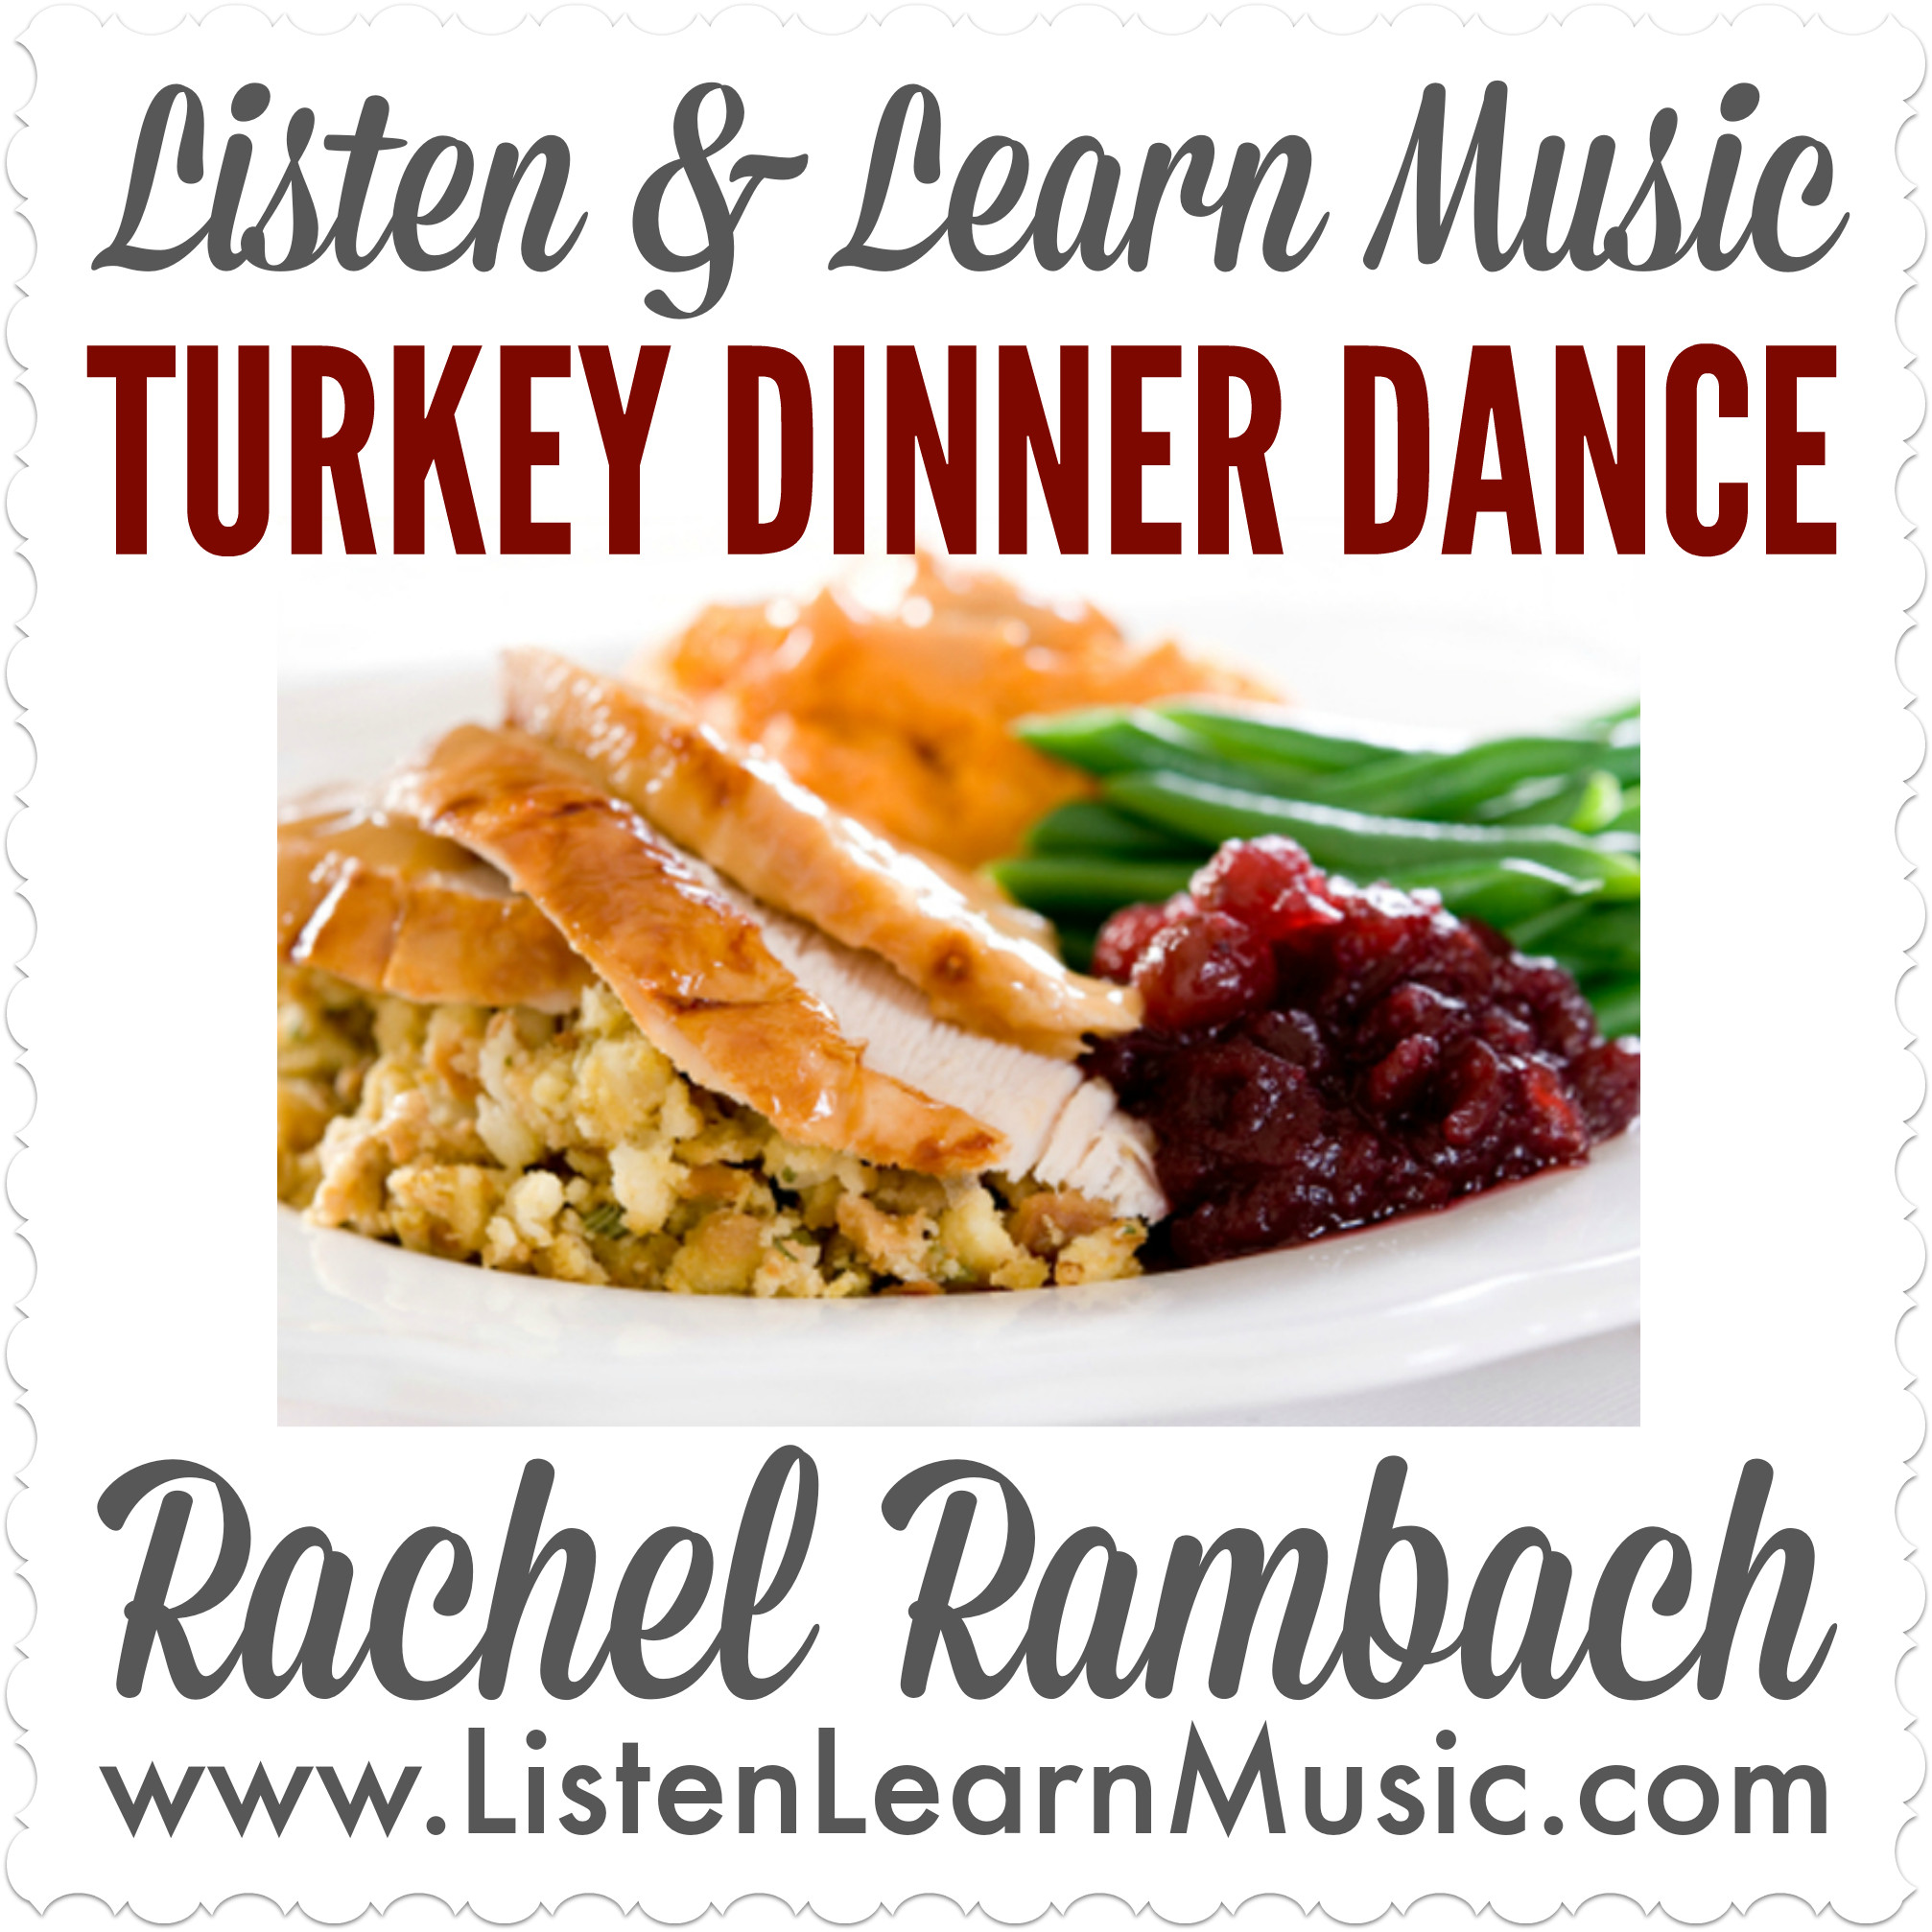 Turkey Dinner Dance | Listen & Learn Music